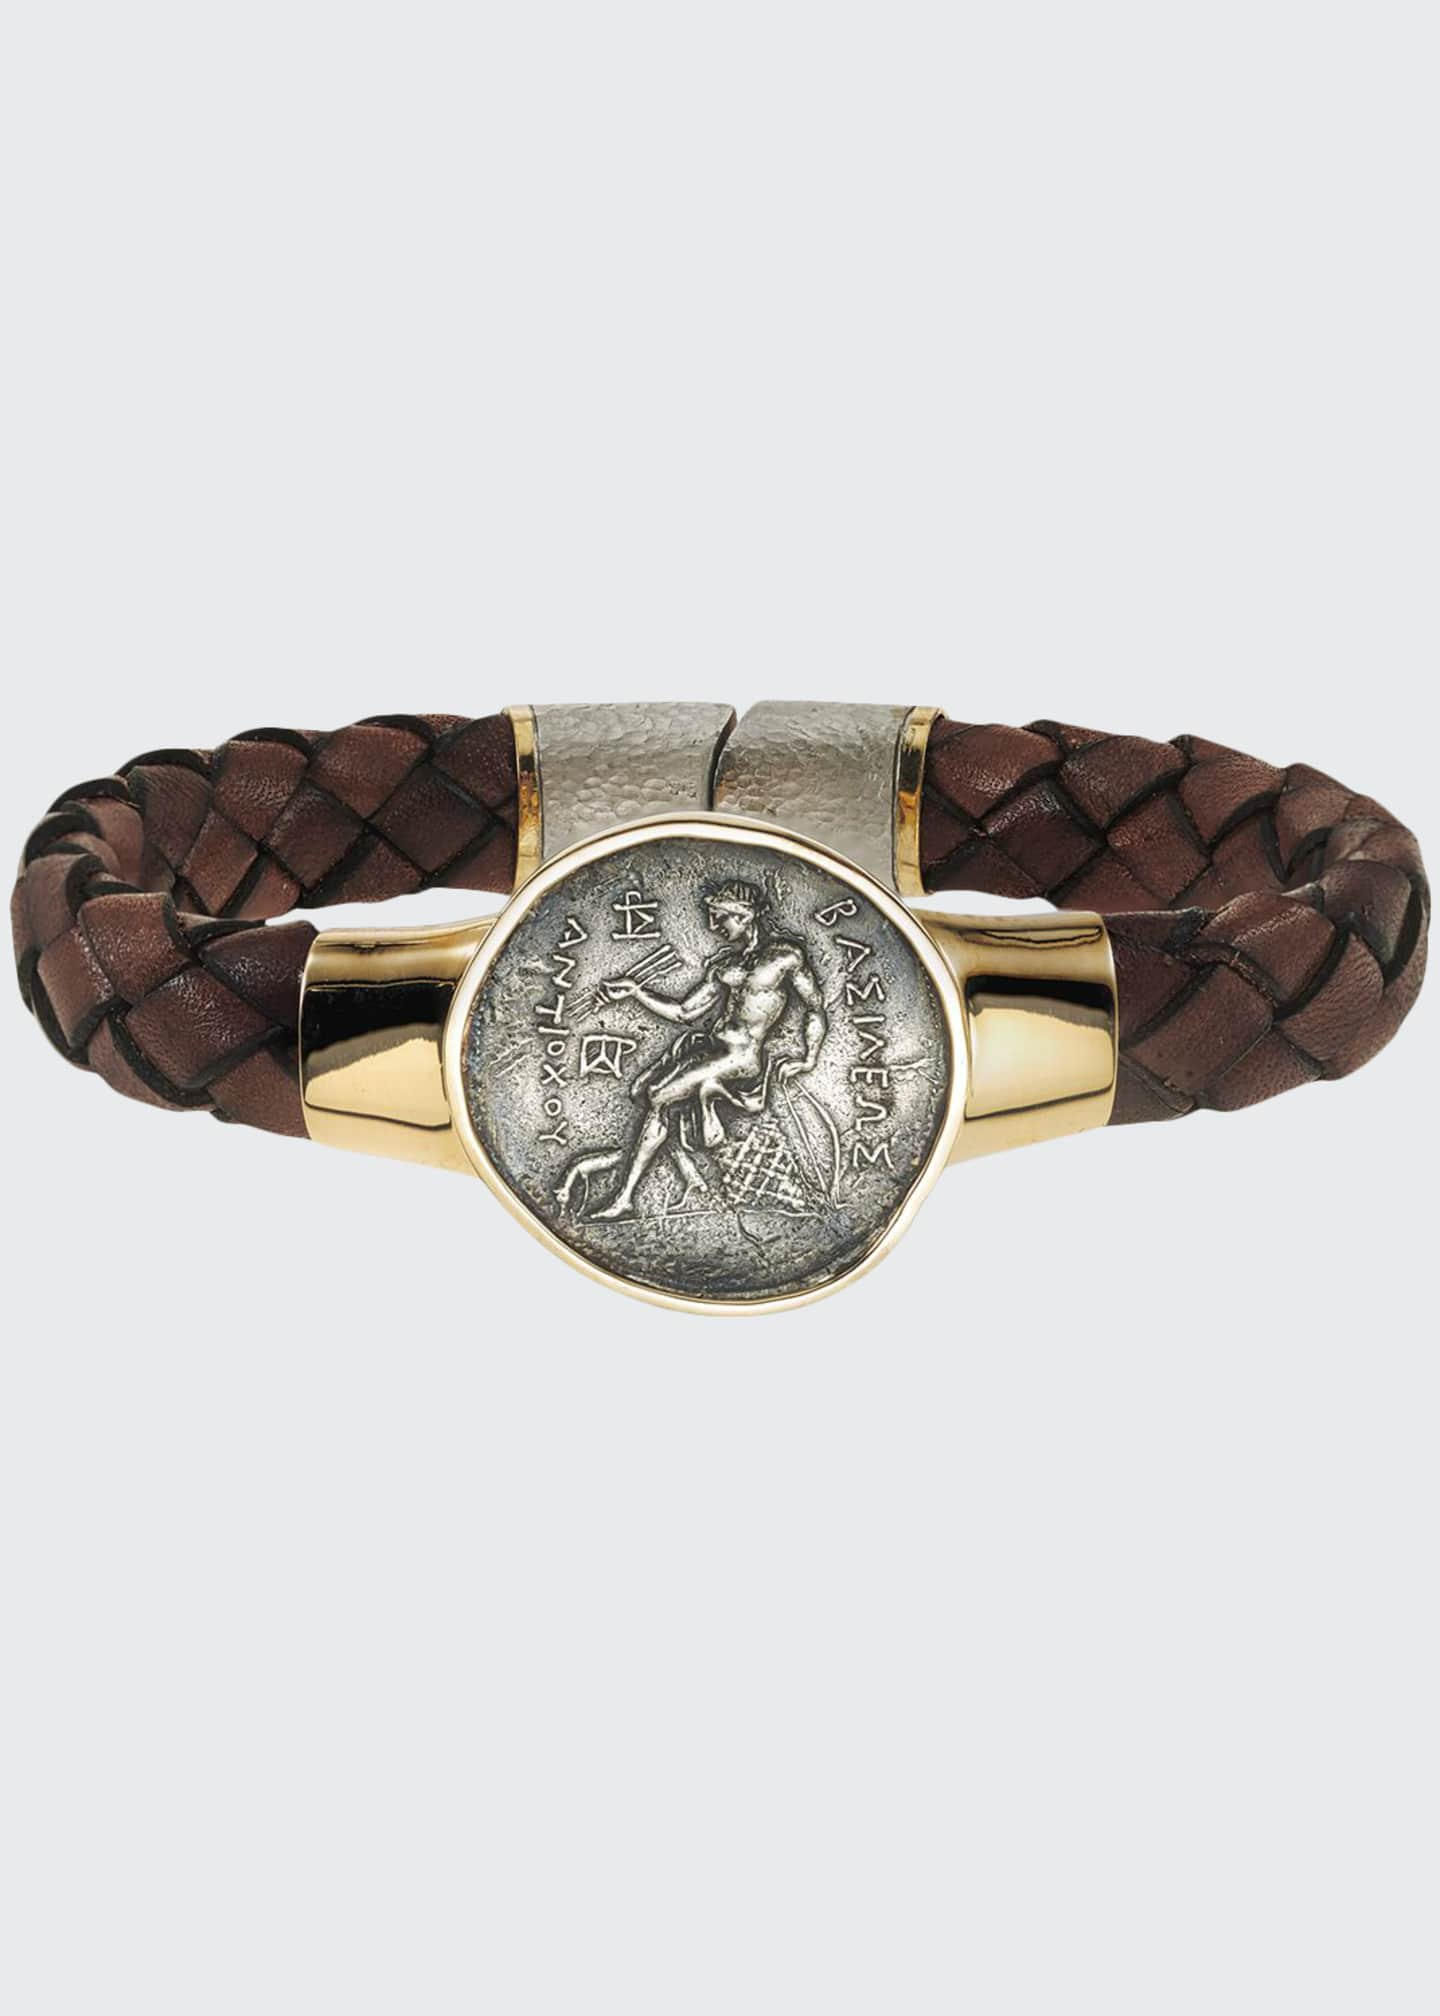 Jorge Adeler Men's Ancient Apollo Coin Braided Leather